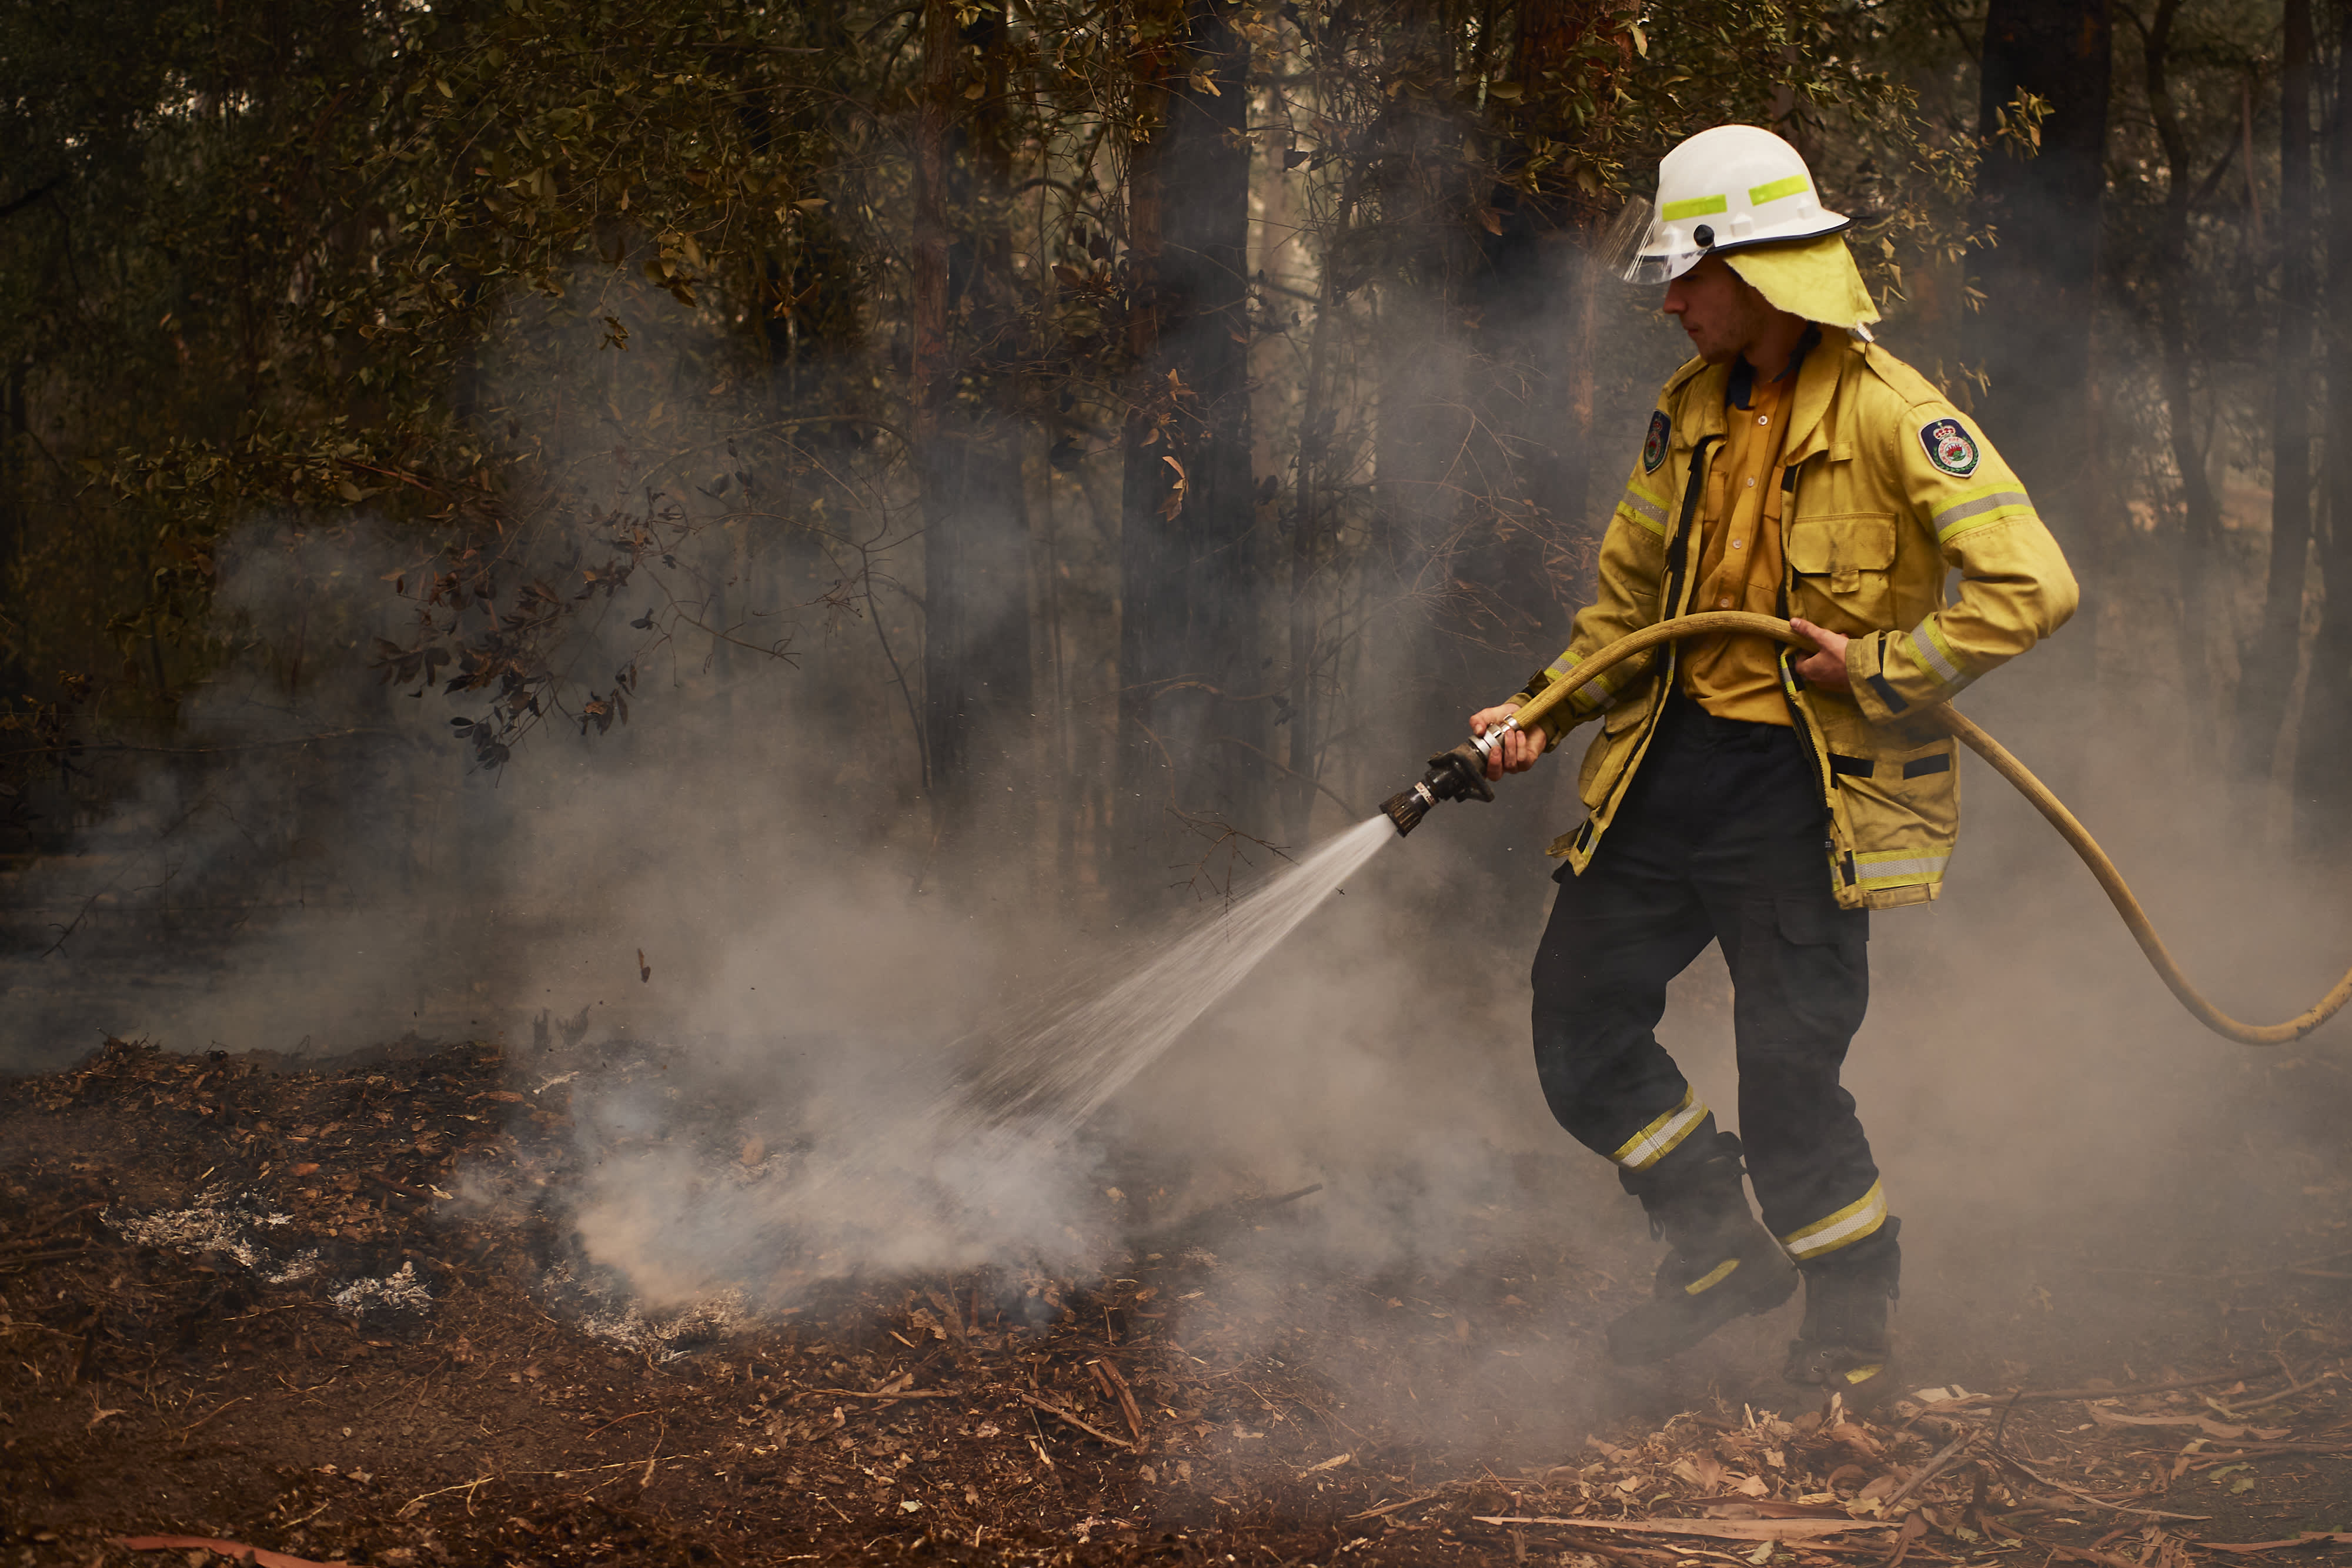 How to help victims of the Australia bushfires